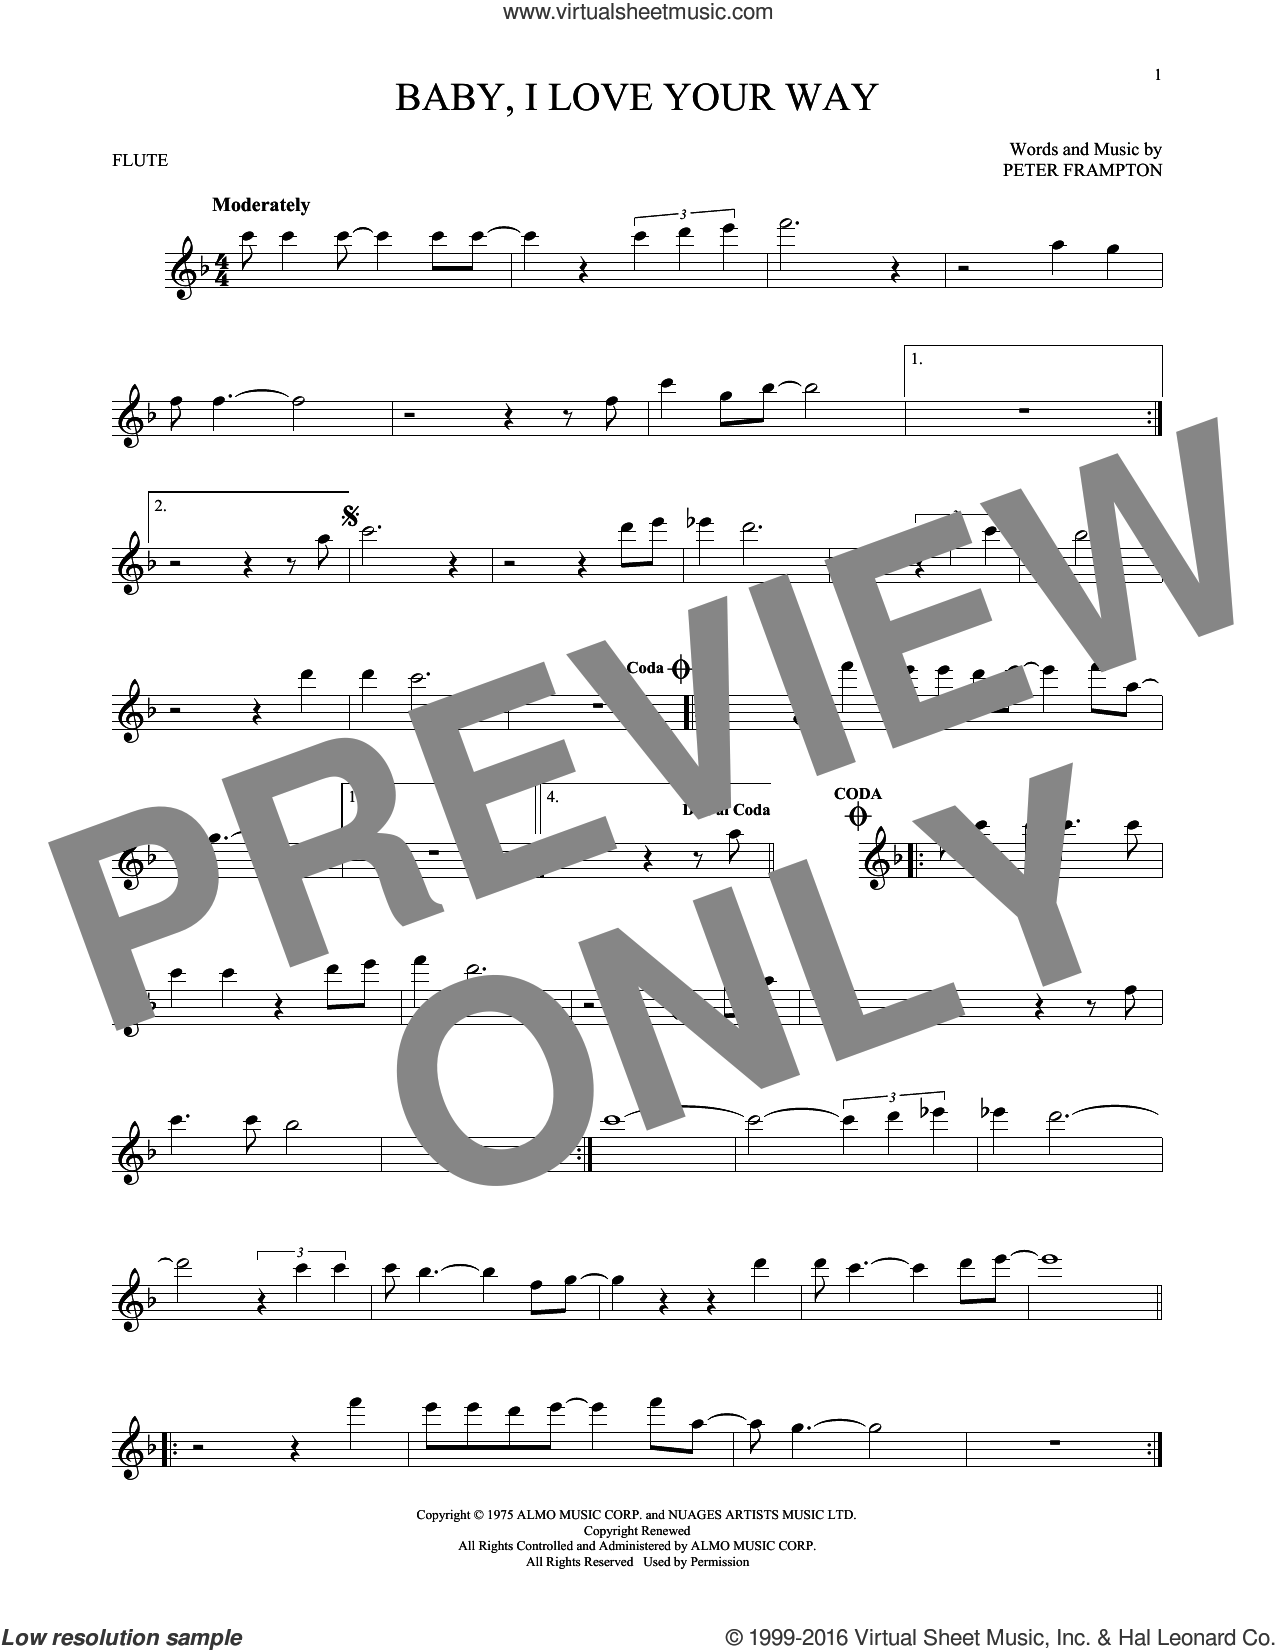 Baby, I Love Your Way sheet music for flute solo by Peter Frampton, intermediate skill level